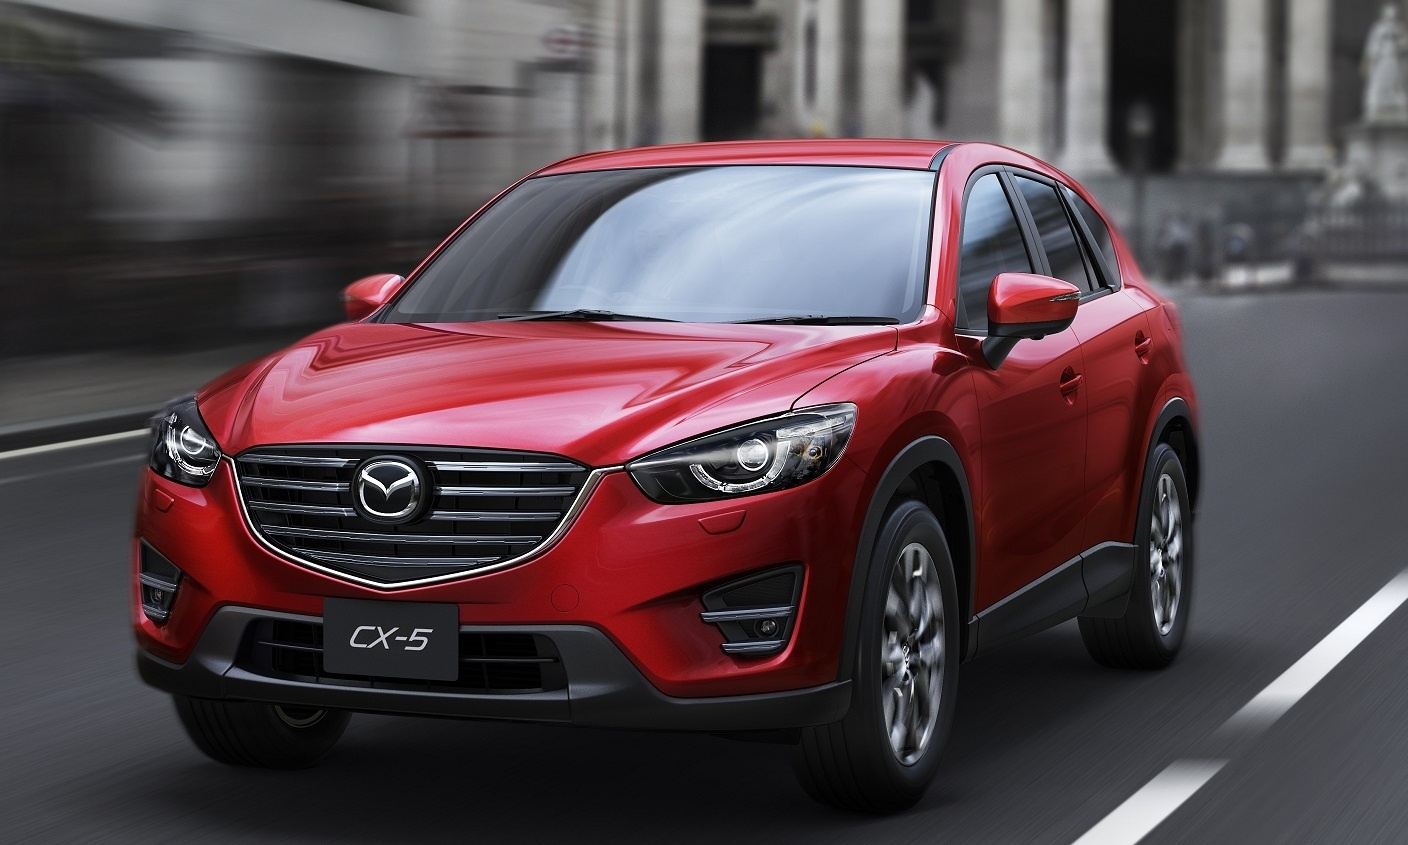 2016 Mazda Cx 5 For Sale In Your Area Cargurus